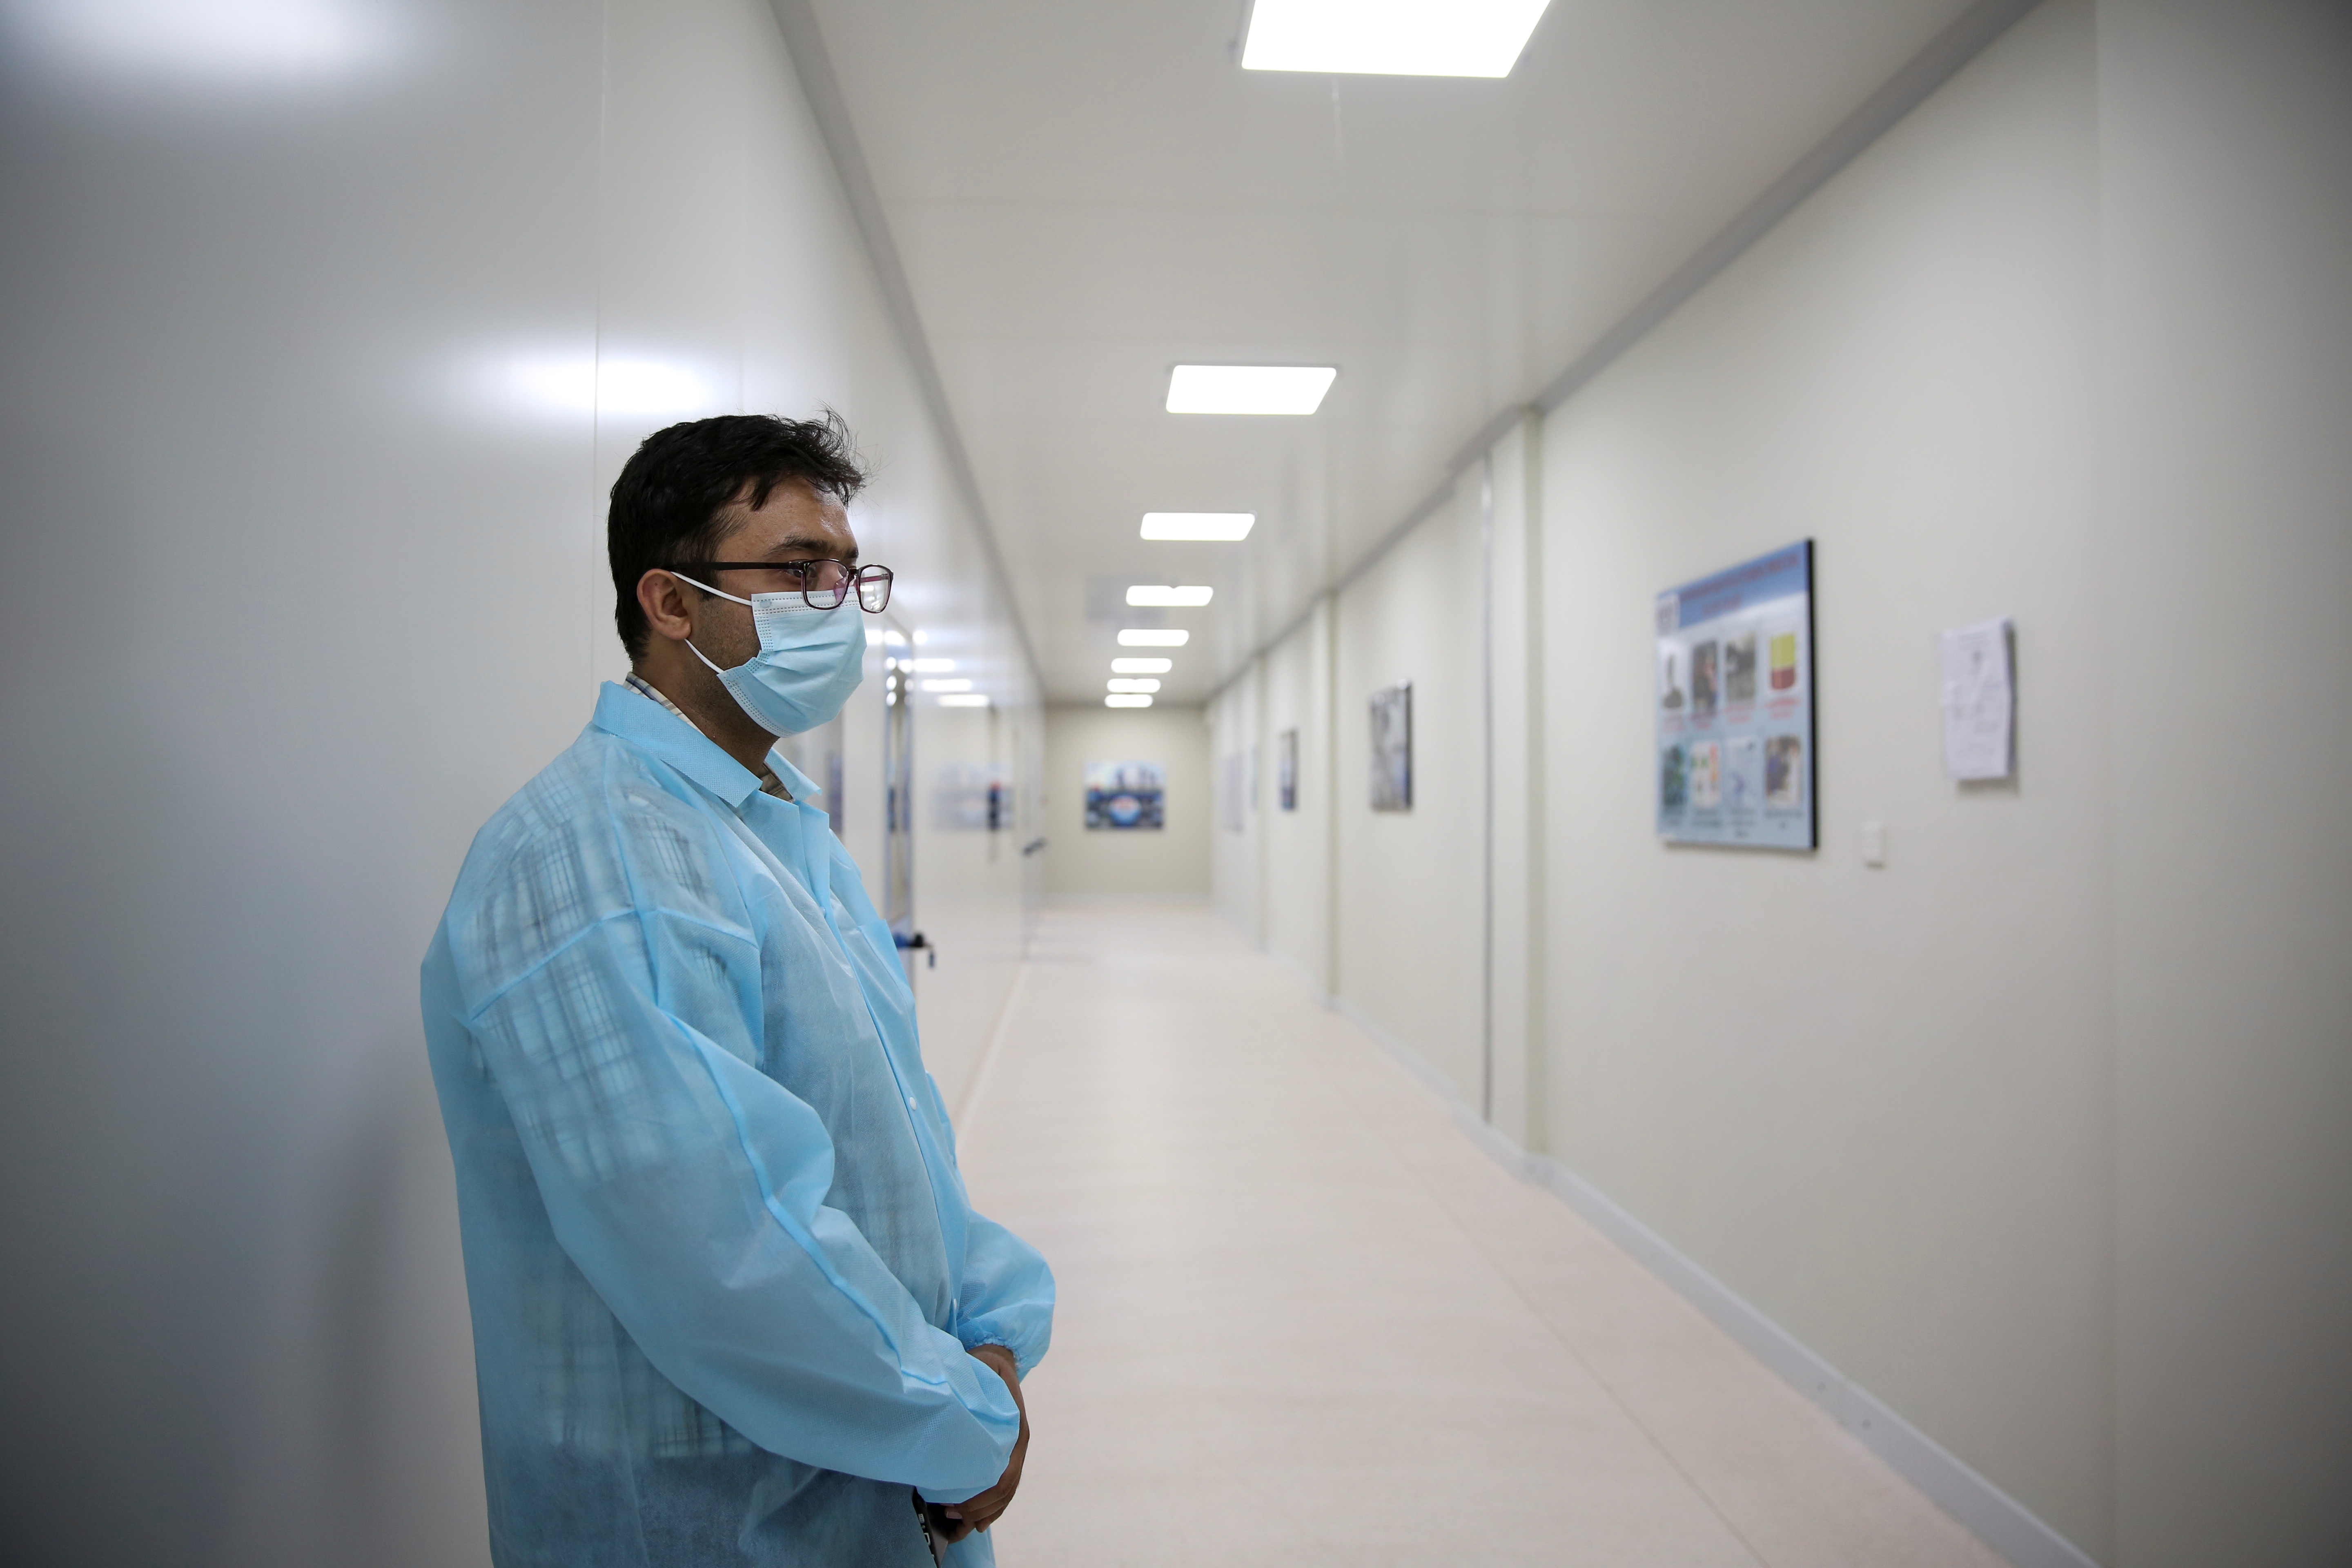 Dr. Omar Saeed, the project coordinator who was part of phase 3 trials of the PakVac coronavirus disease (COVID-19) vaccine, which is being produced locally, stands at the premises of the National Institute of Health (NIH) in Islamabad, Pakistan June 3, 2021. Picture taken June 3, 2021. REUTERS/Saiyna Bashir